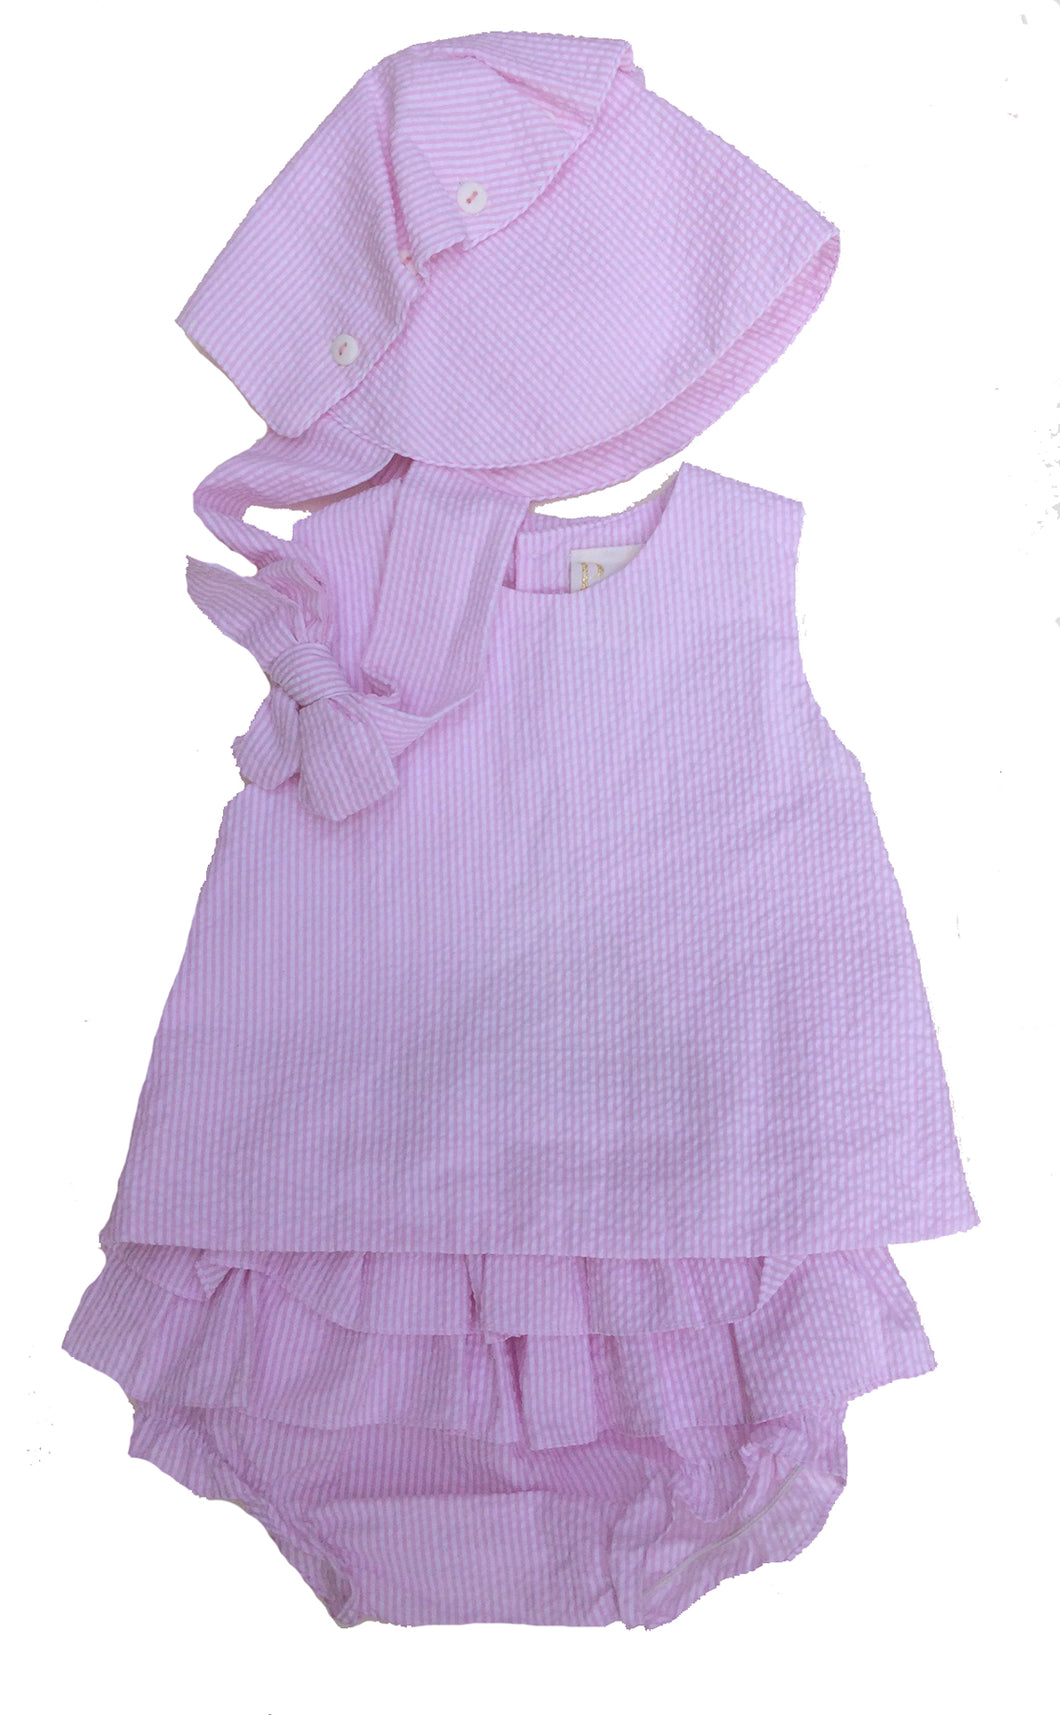 Pink & White Striped Seersucker Popover Set with Bonnet